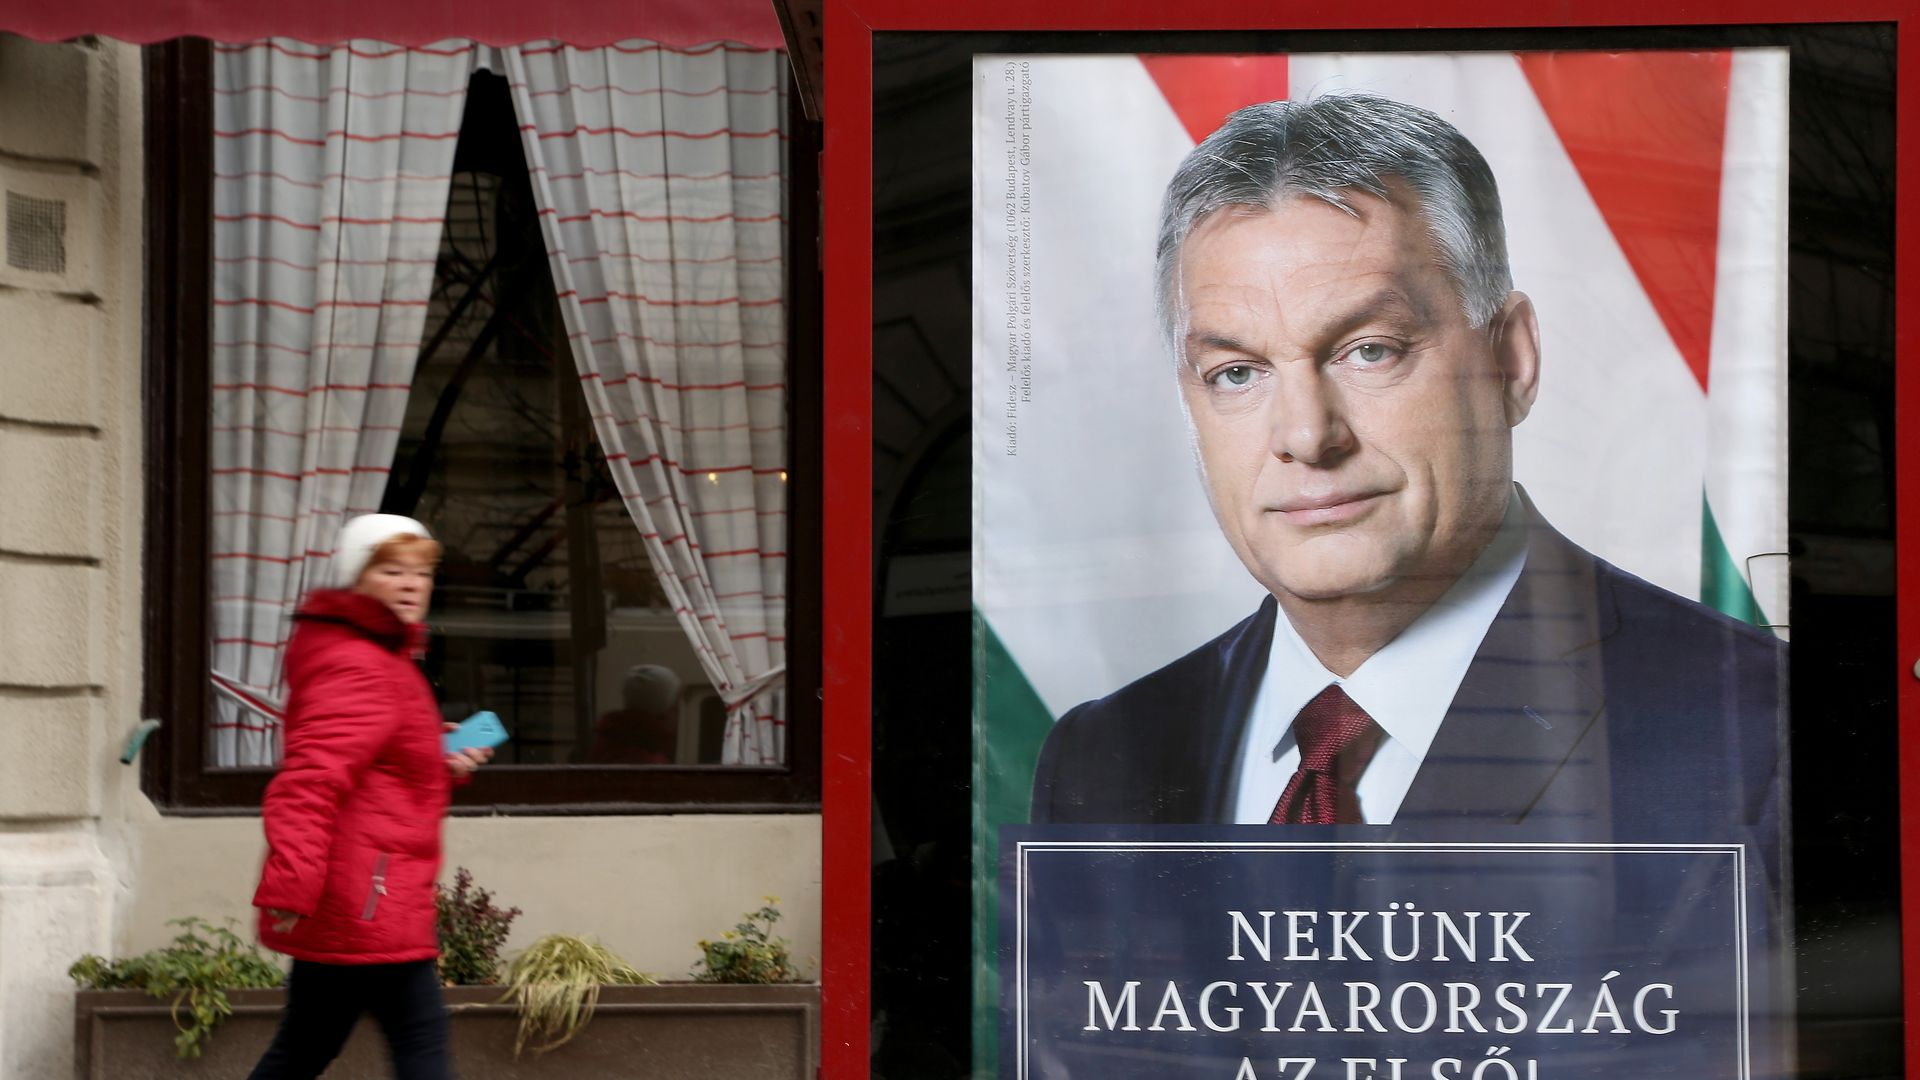 A poster featuring Hungarian Prime Minister Viktor Orban hangs prior to the upcoming Hungarian parliamentary elections on April 8, on March 17, 2018 in Budapest, Hungary.